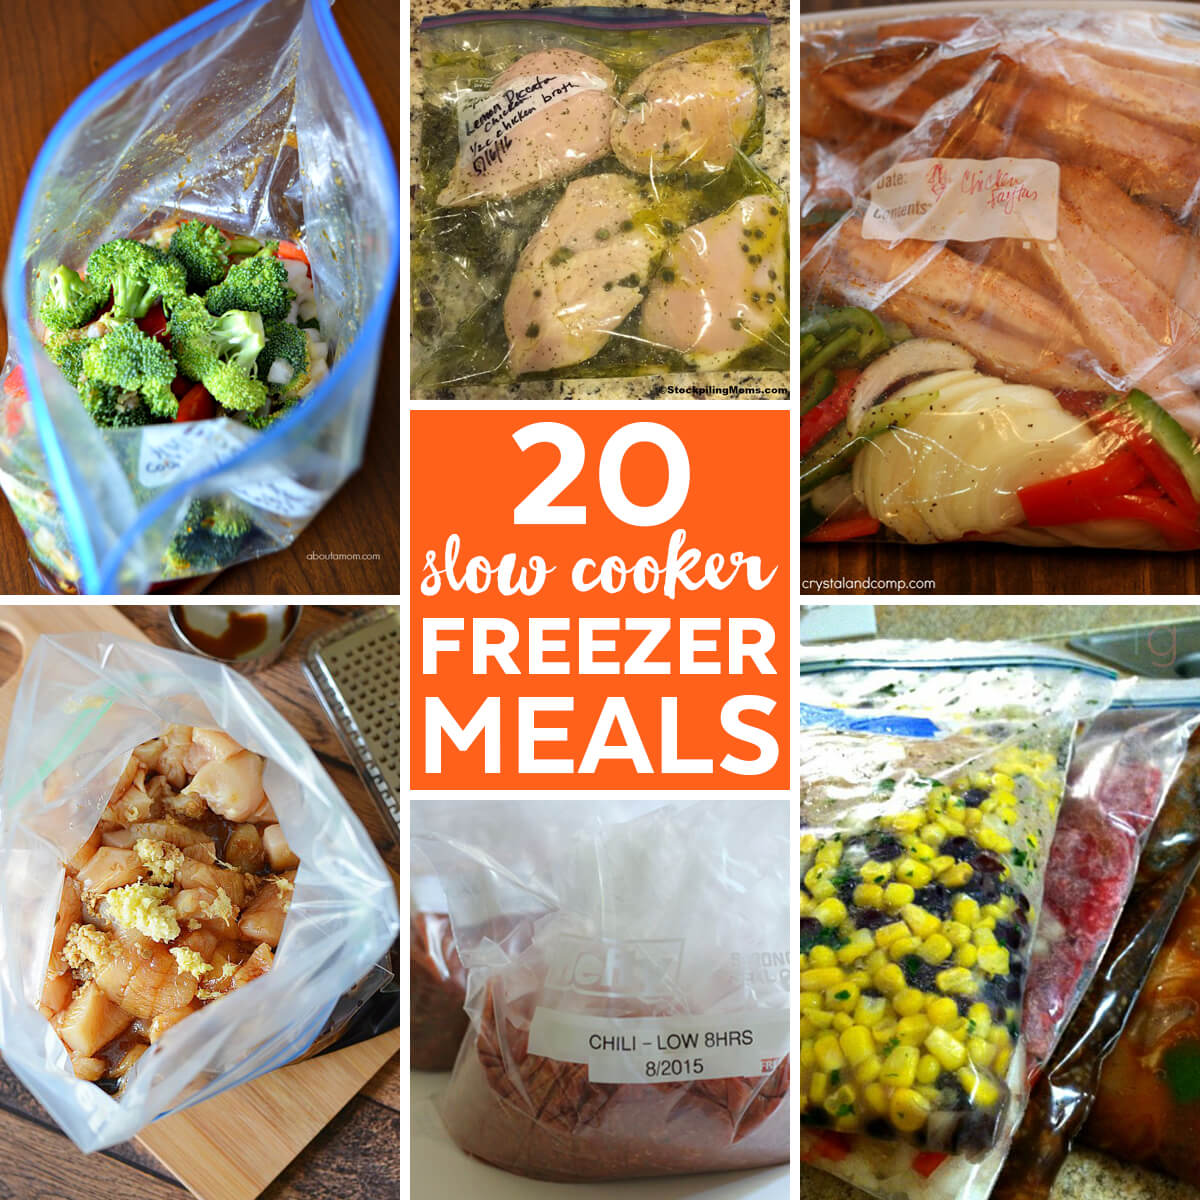 Slow Cooker Freezer Meals for New Moms | Freezer Crockpot Meals | Make Ahead Meals Slow Cooker Recipes | Freezer Cooking Recipes | Make Ahead Freezer Meals | Crock Pot Freezer Meals